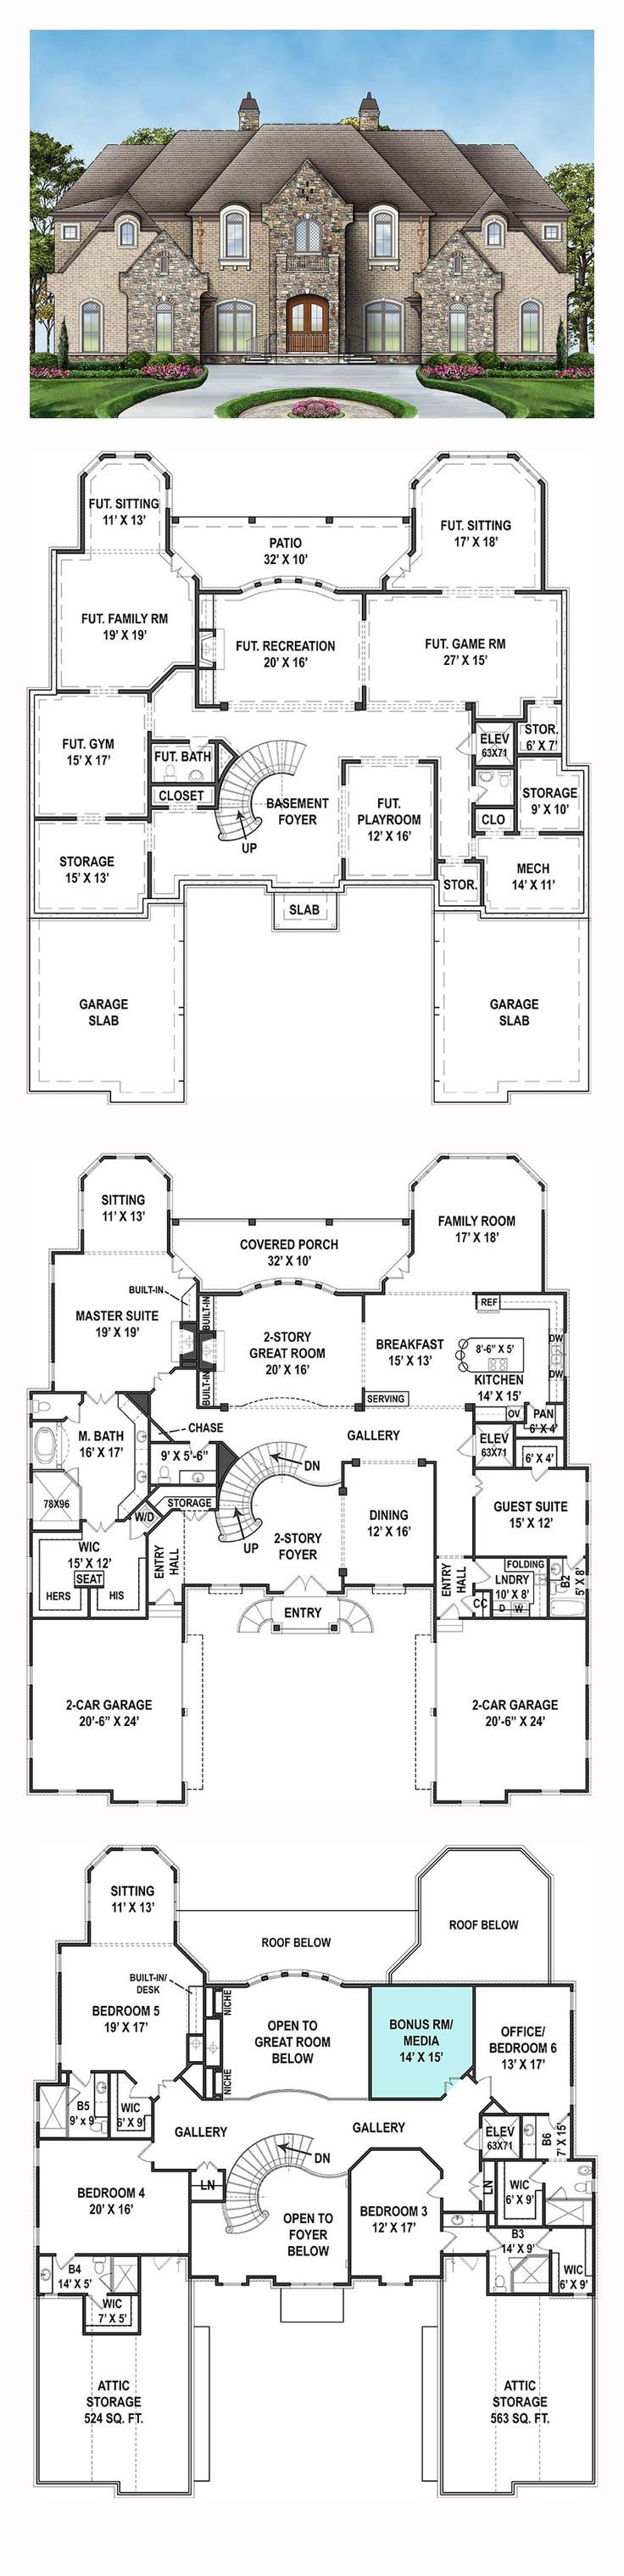 25 best ideas about texas house plans on pinterest barn